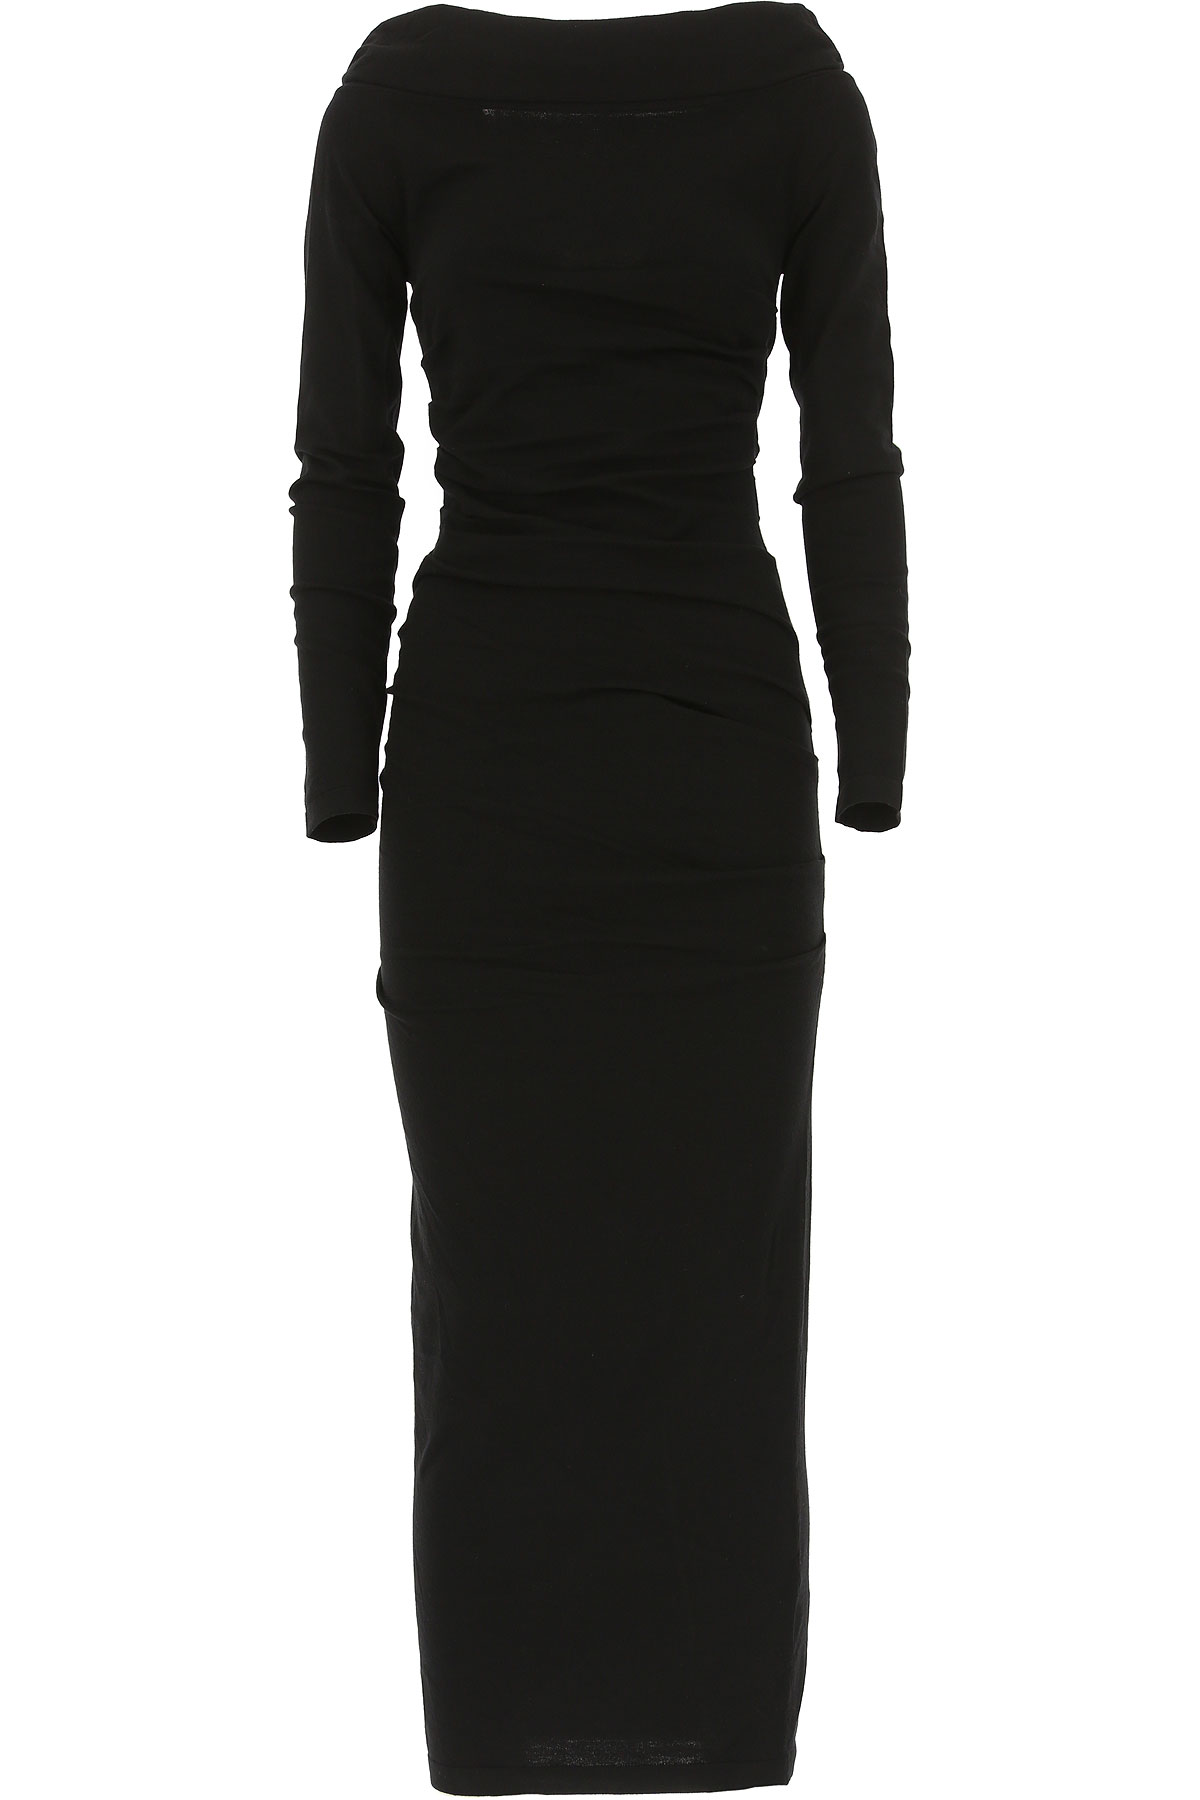 Image of Liviana Conti Dress for Women, Evening Cocktail Party, Black, Viscose, 2017, 6 8